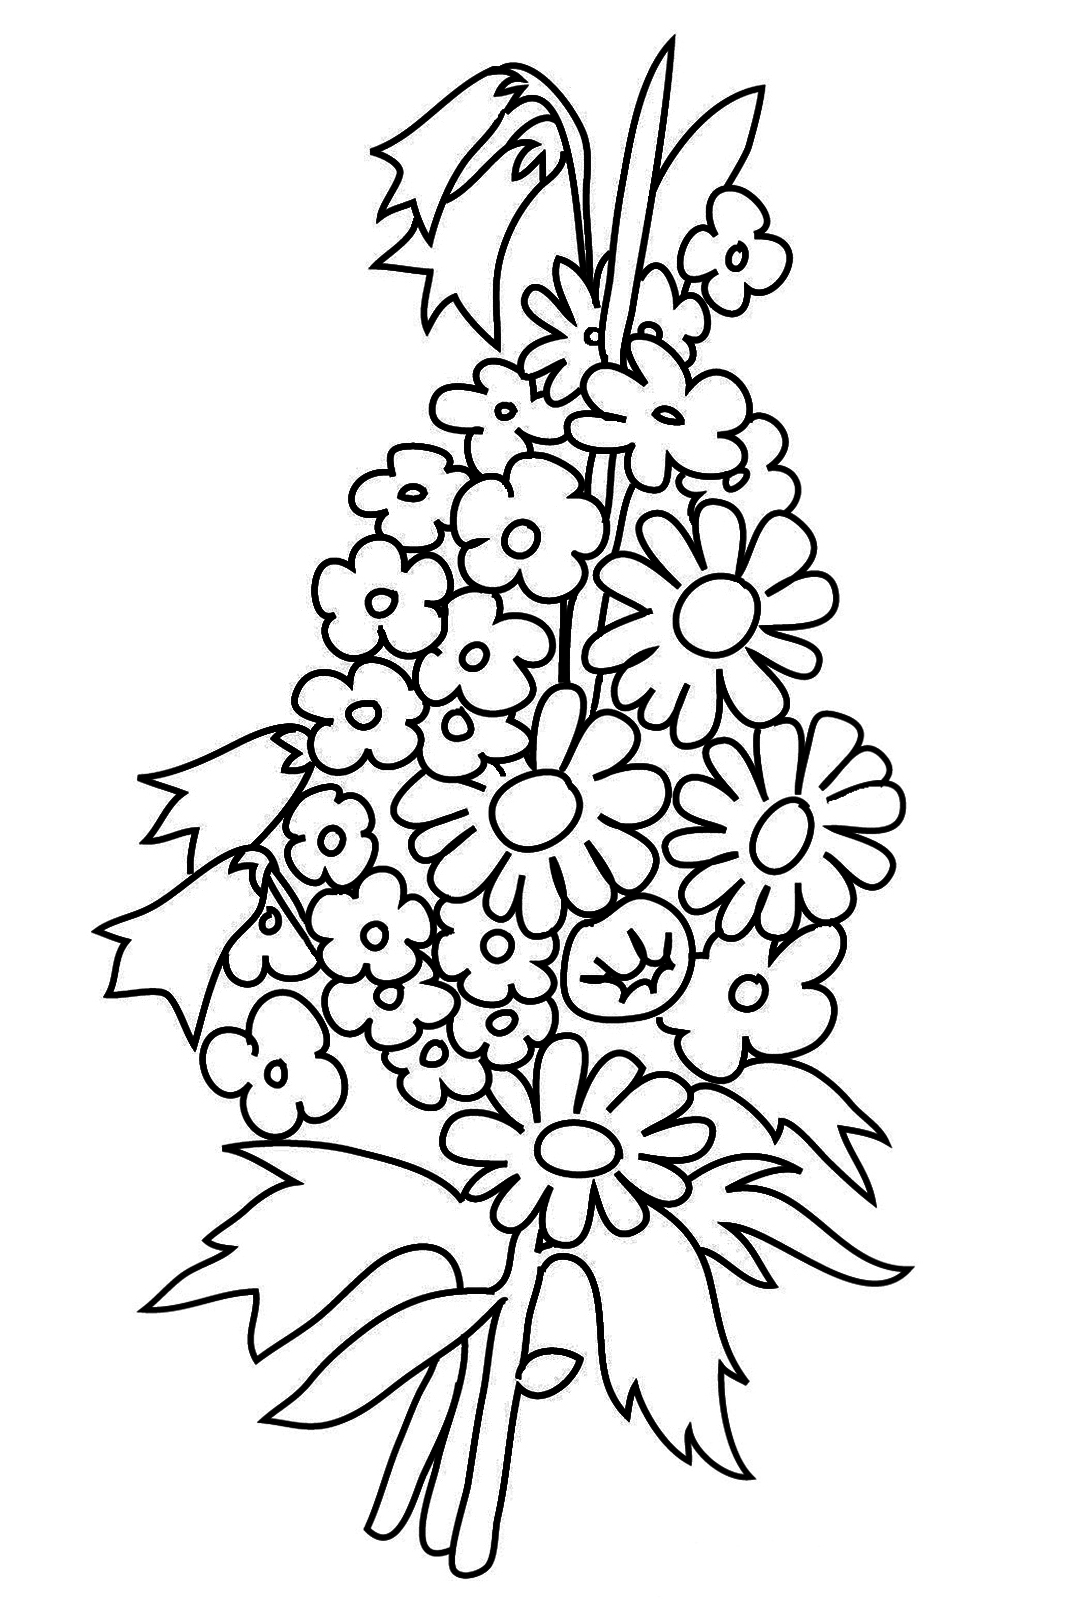 flower coloring page coloring town flower page coloring